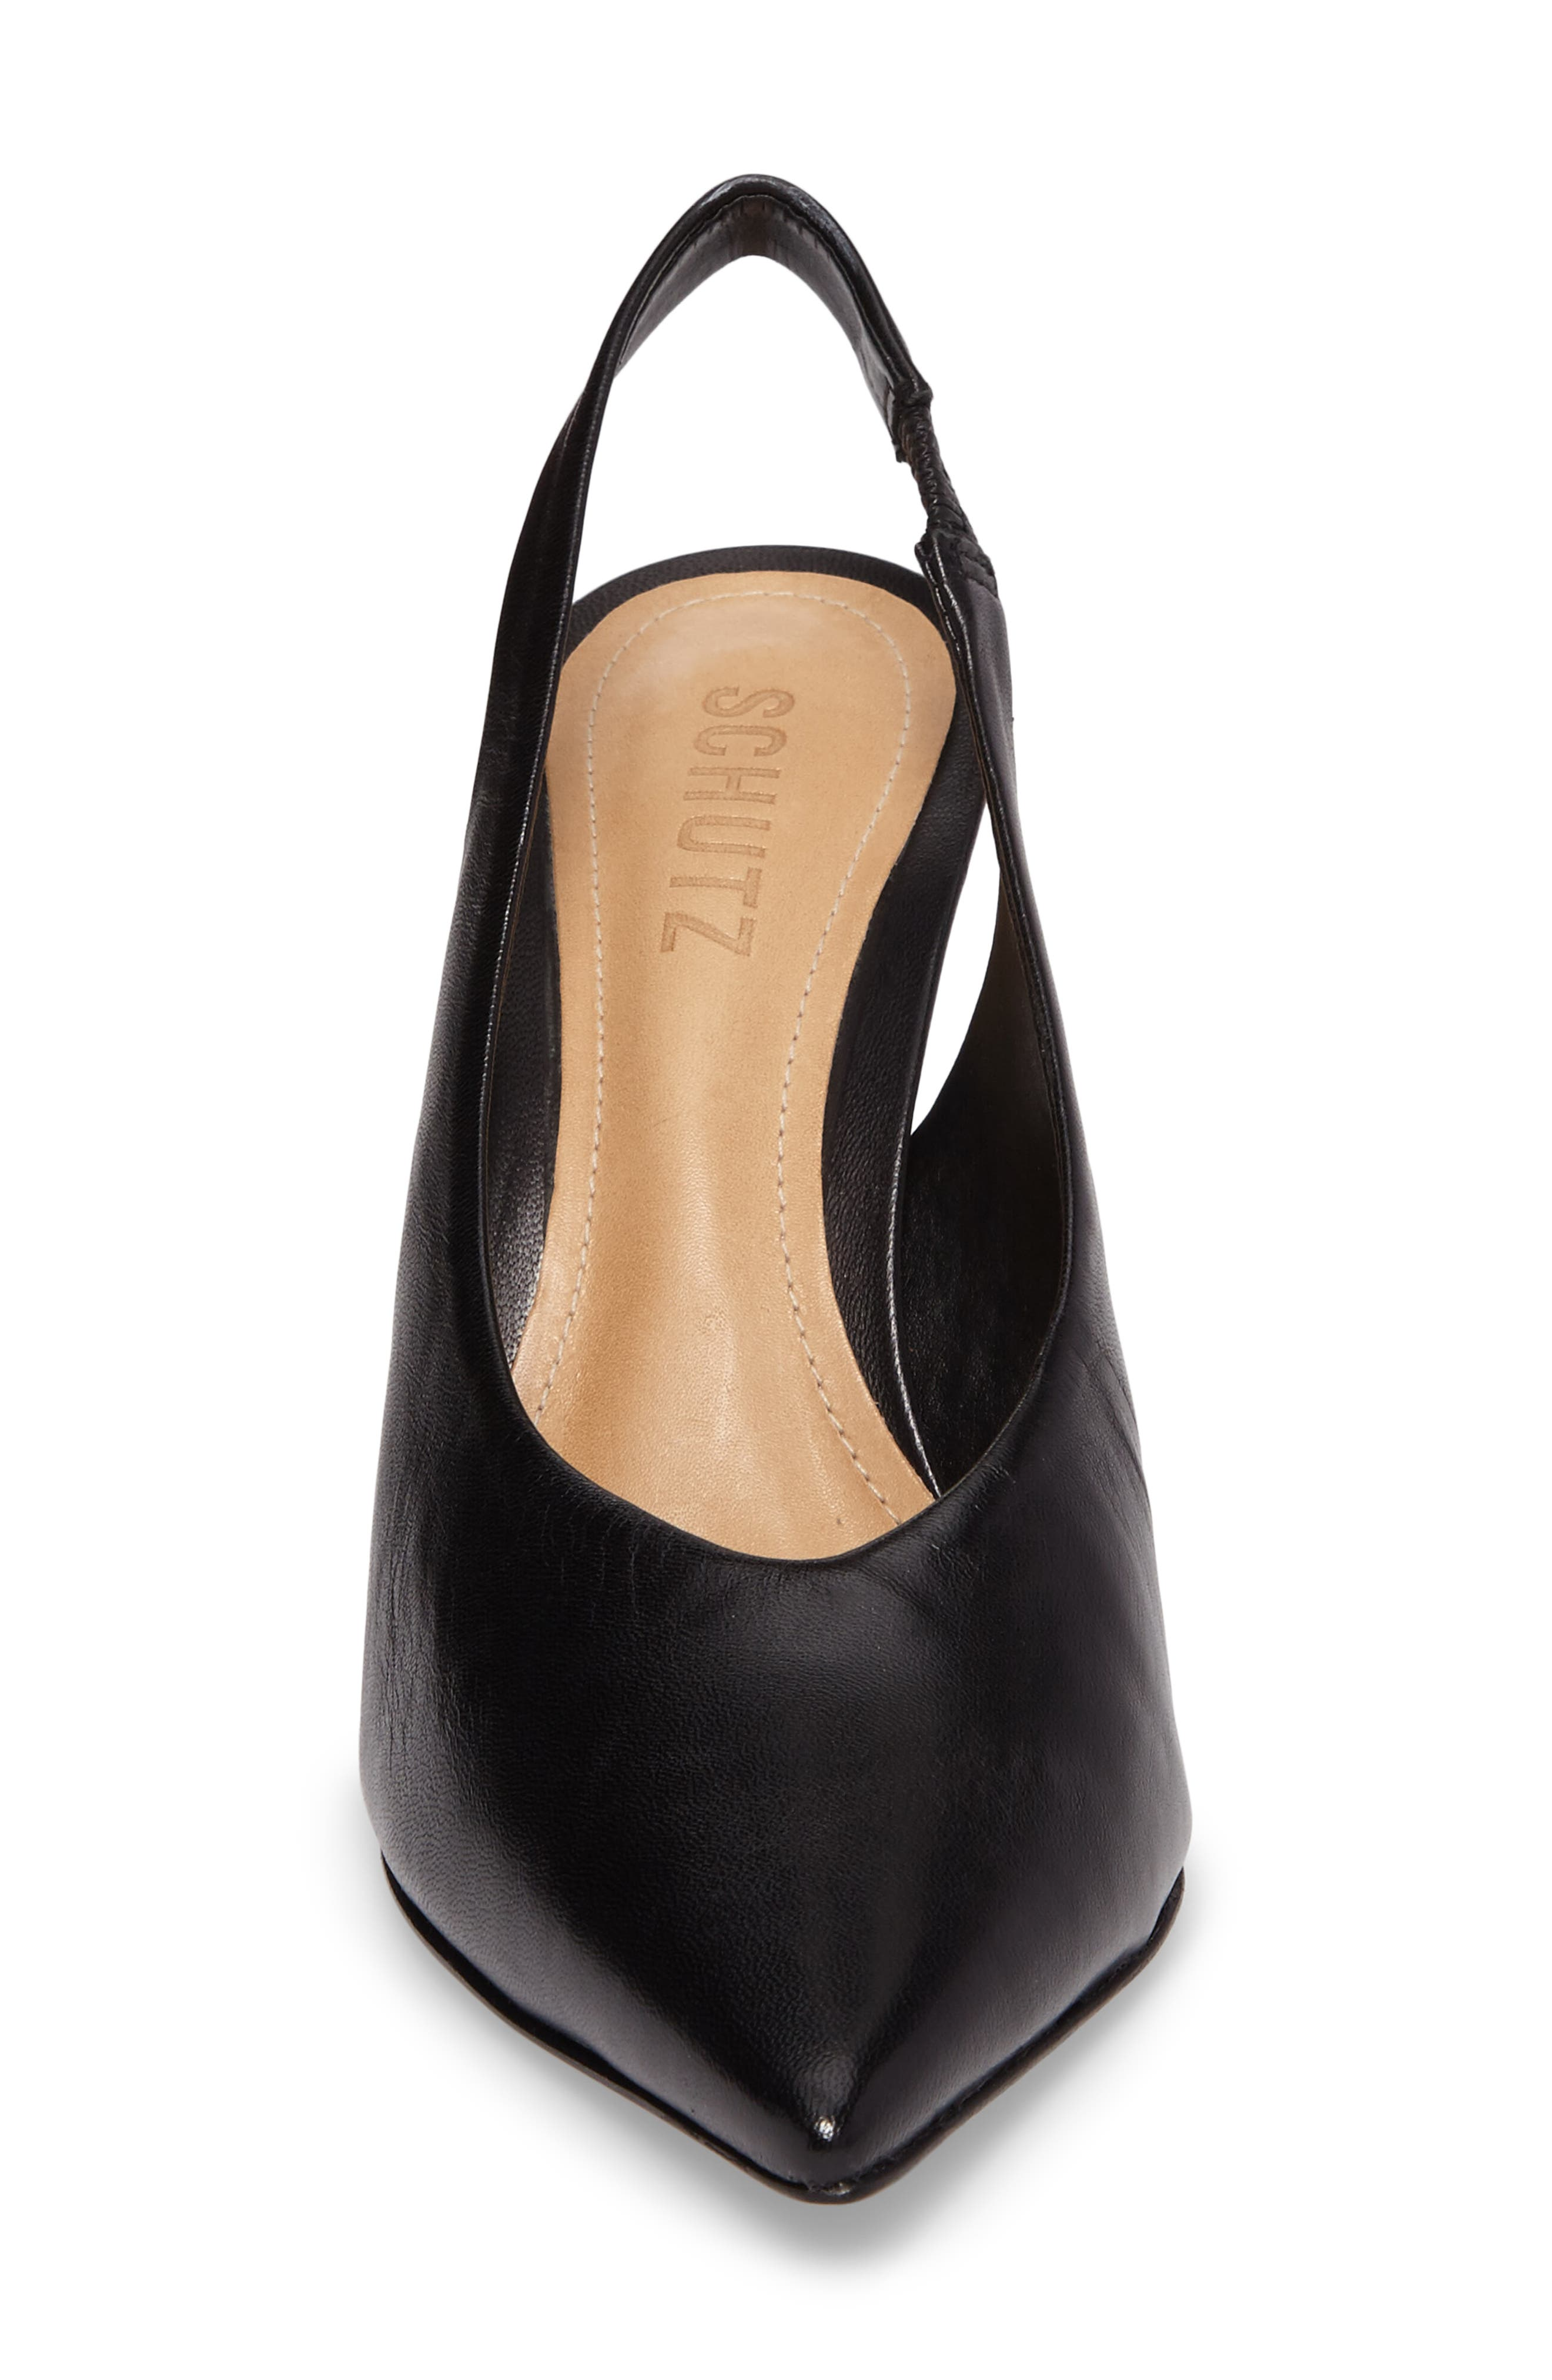 Phisalis Slingback Pump,                             Alternate thumbnail 4, color,                             Black Mestico Leather